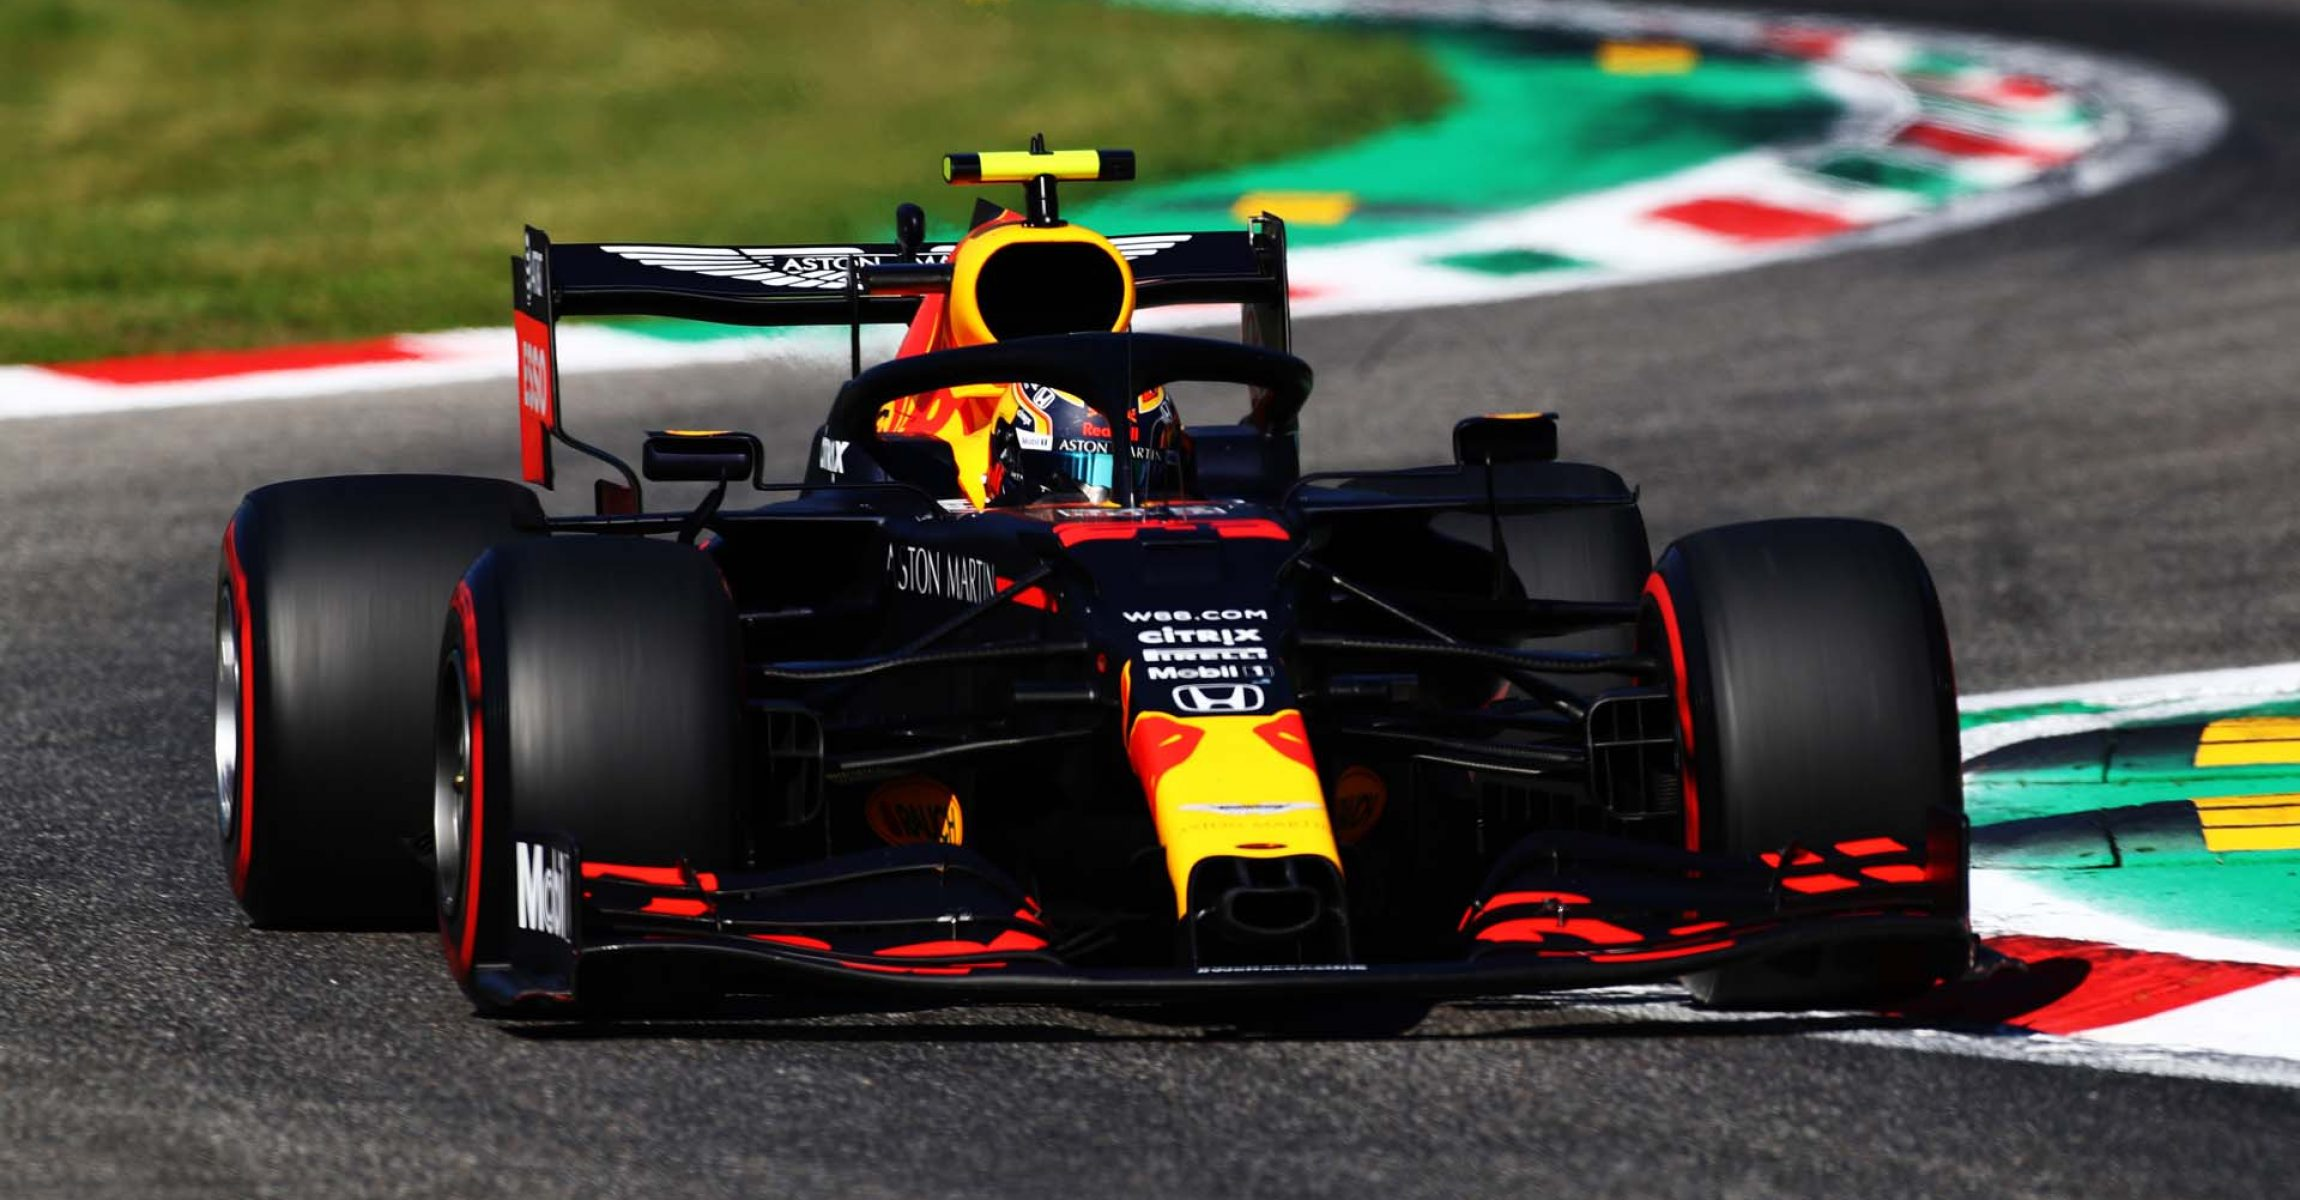 MONZA, ITALY - SEPTEMBER 05: Alexander Albon of Thailand driving the (23) Aston Martin Red Bull Racing RB16 on track during qualifying for the F1 Grand Prix of Italy at Autodromo di Monza on September 05, 2020 in Monza, Italy. (Photo by Mark Thompson/Getty Images)